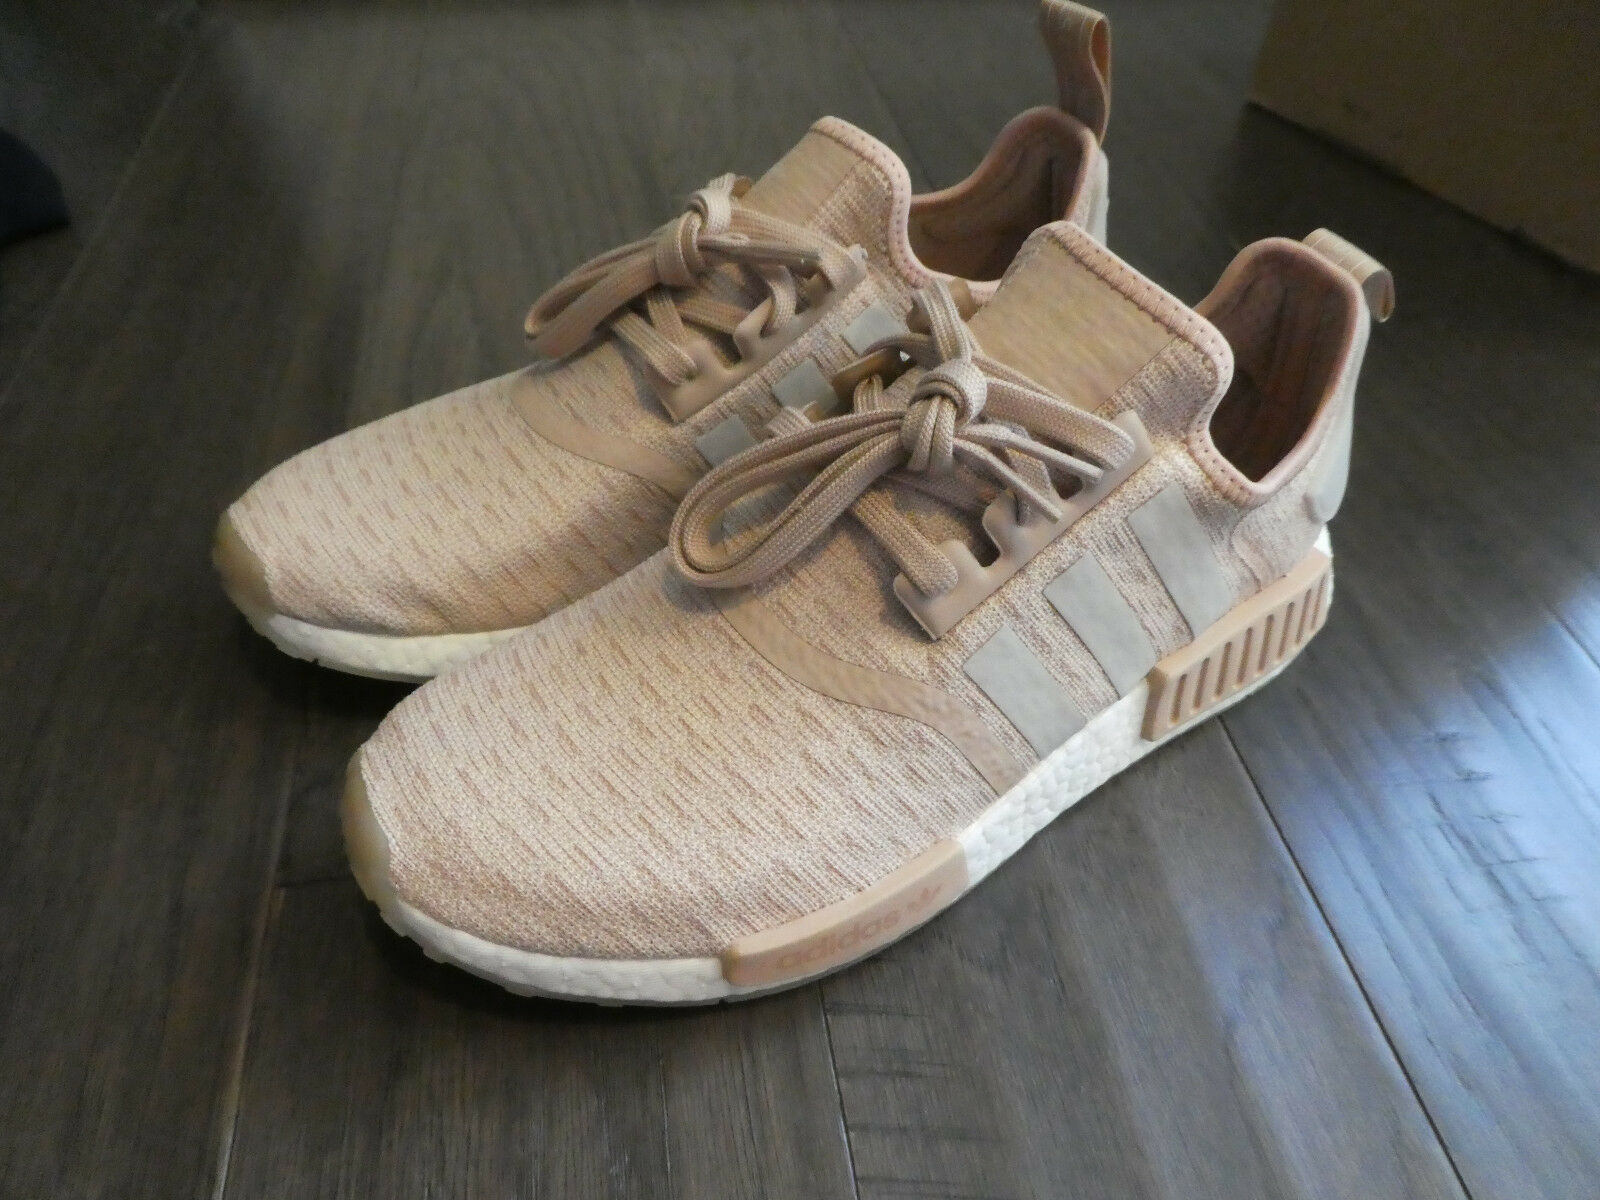 Adidas Women's NMD_R1 NMD_R1 Women's Boost shoes sneakers new CQ2012 Ash Pearl Chalk bba6f2